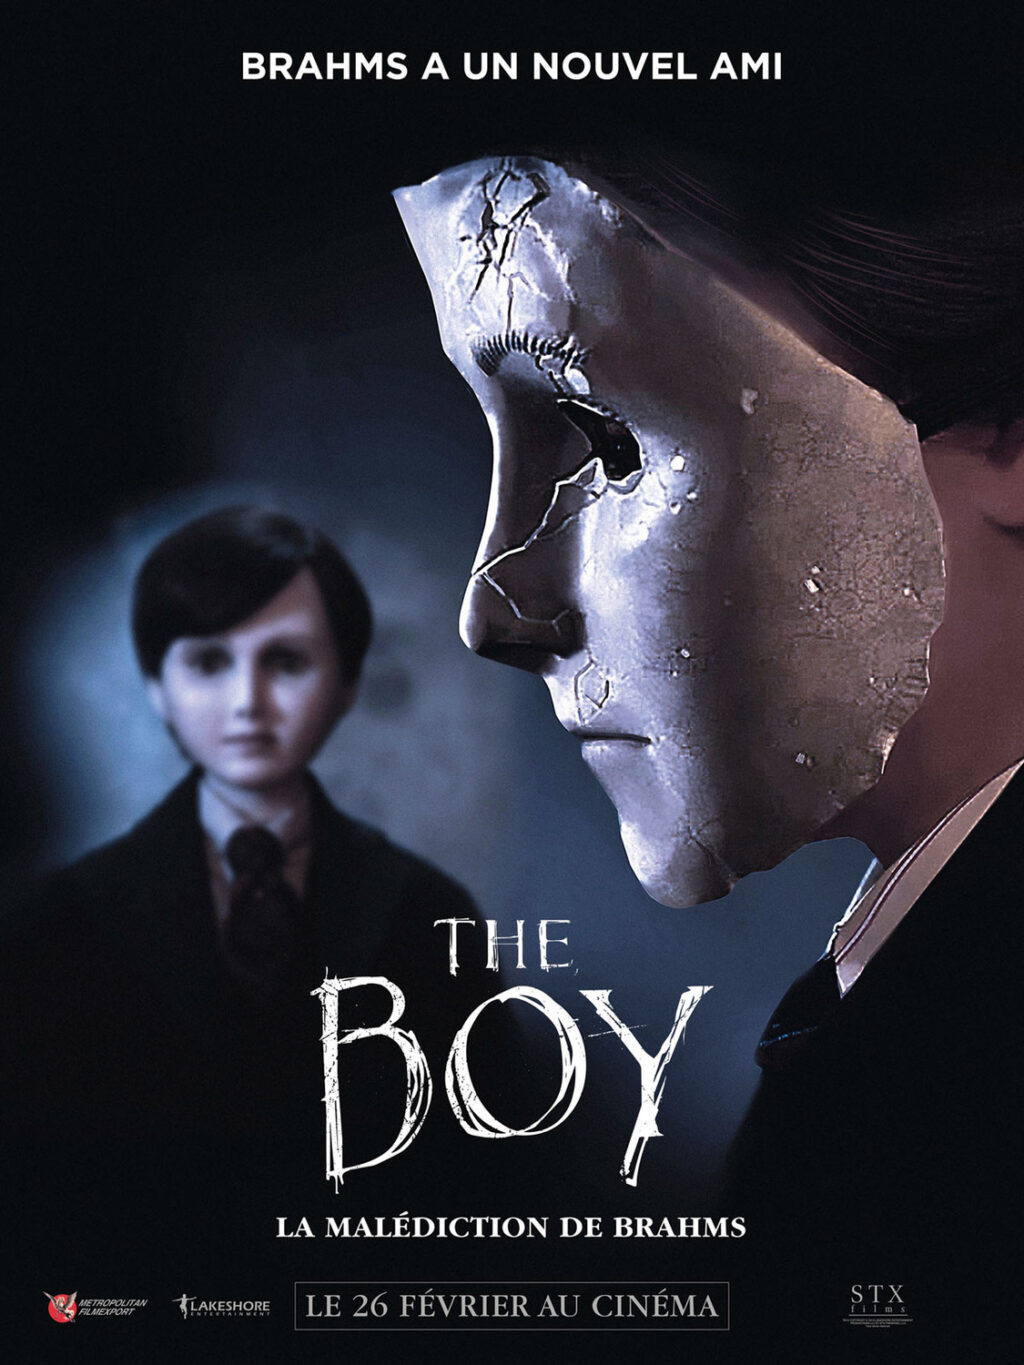 Brahms The Boy II Poster 3 1024x1365 - BRAHMS: THE BOY 2 Scores $5.9M Opening Weekend